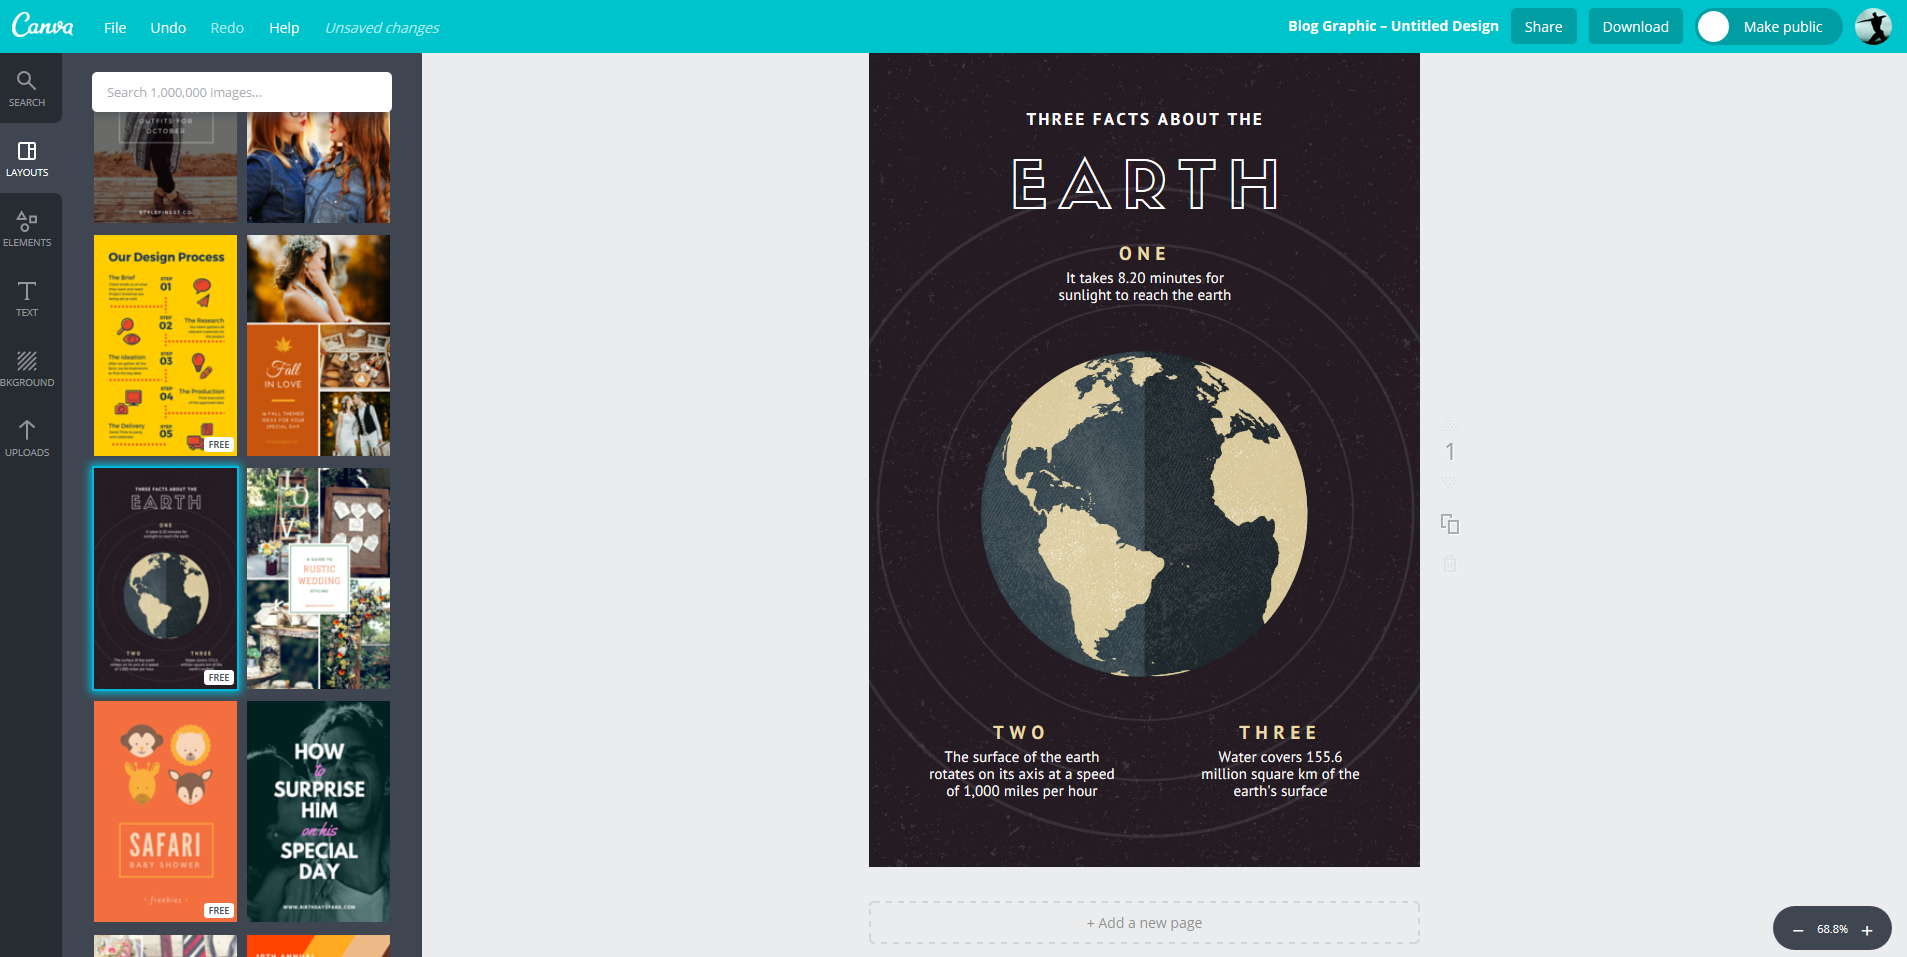 The Canva interface